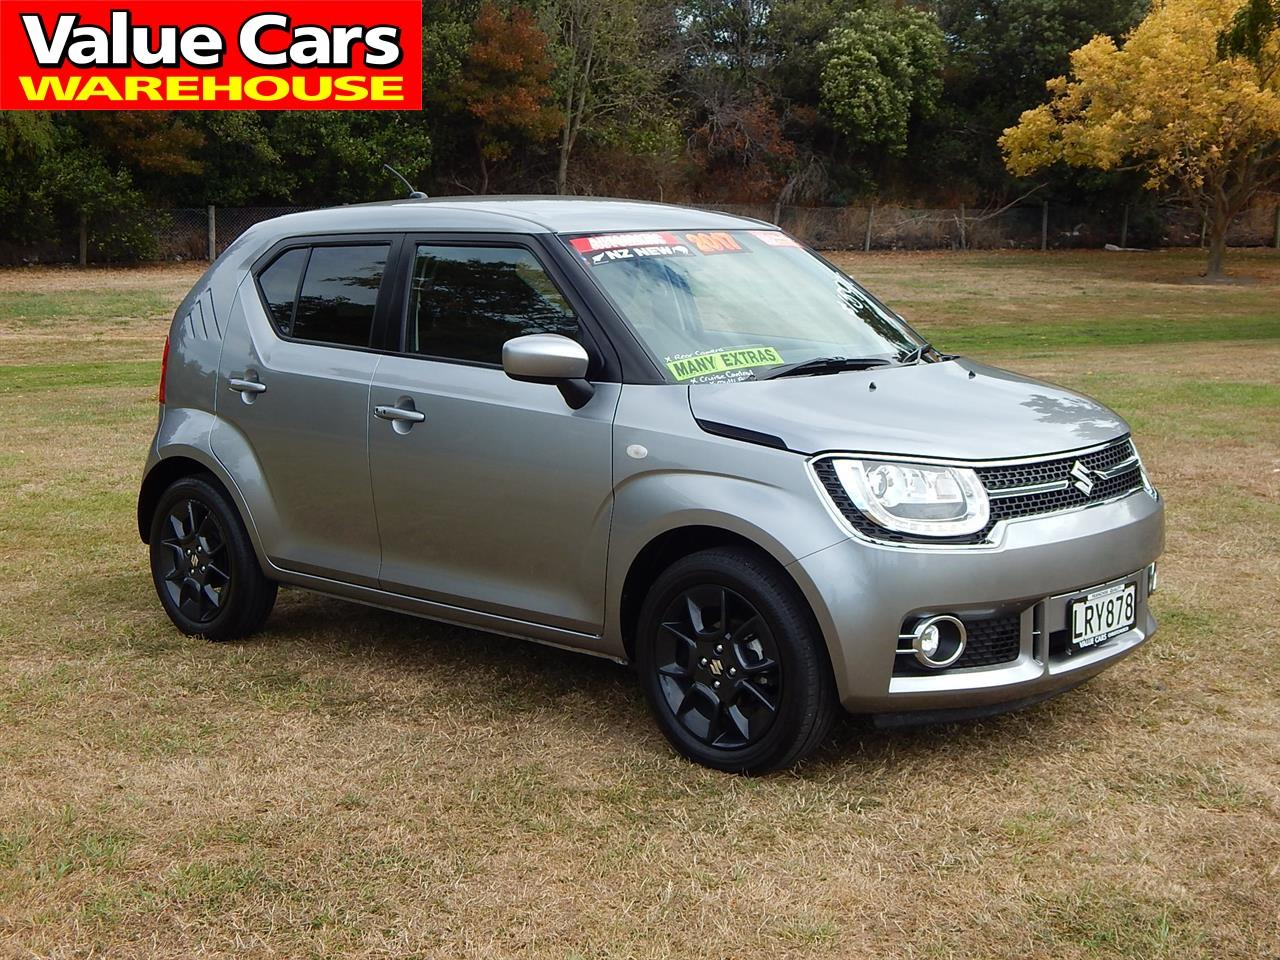 image-0, 2017 Suzuki IGNIS LTDC 1.2P/CVT at Christchurch